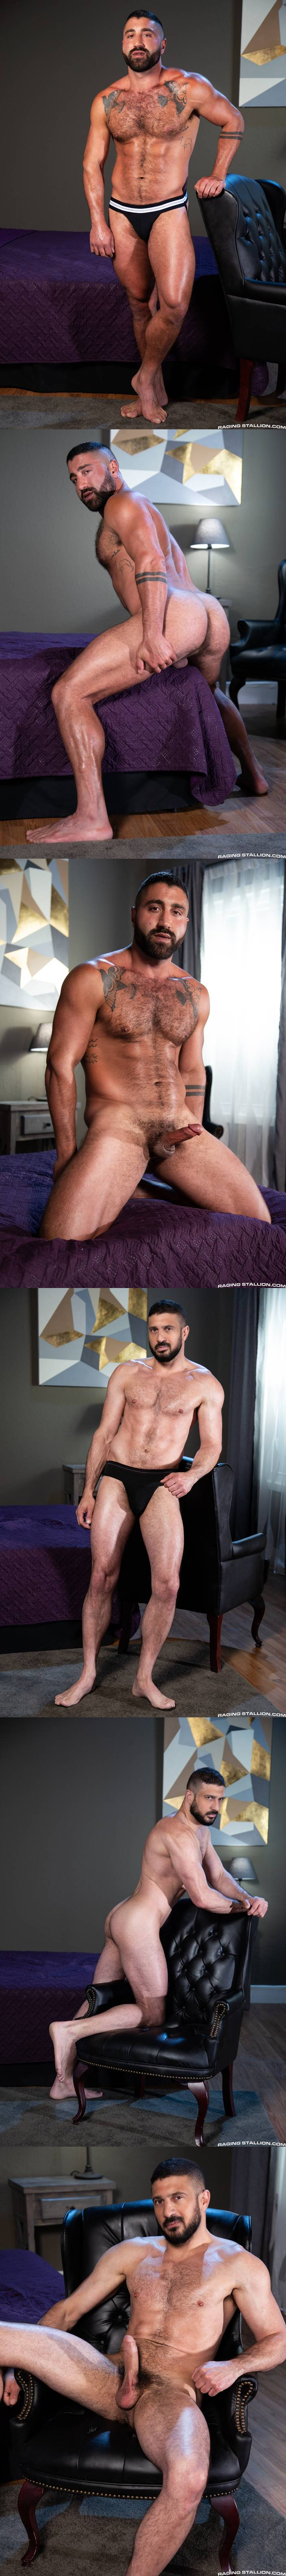 Sharok and Marco Napoli - Hot, Raw and Ready